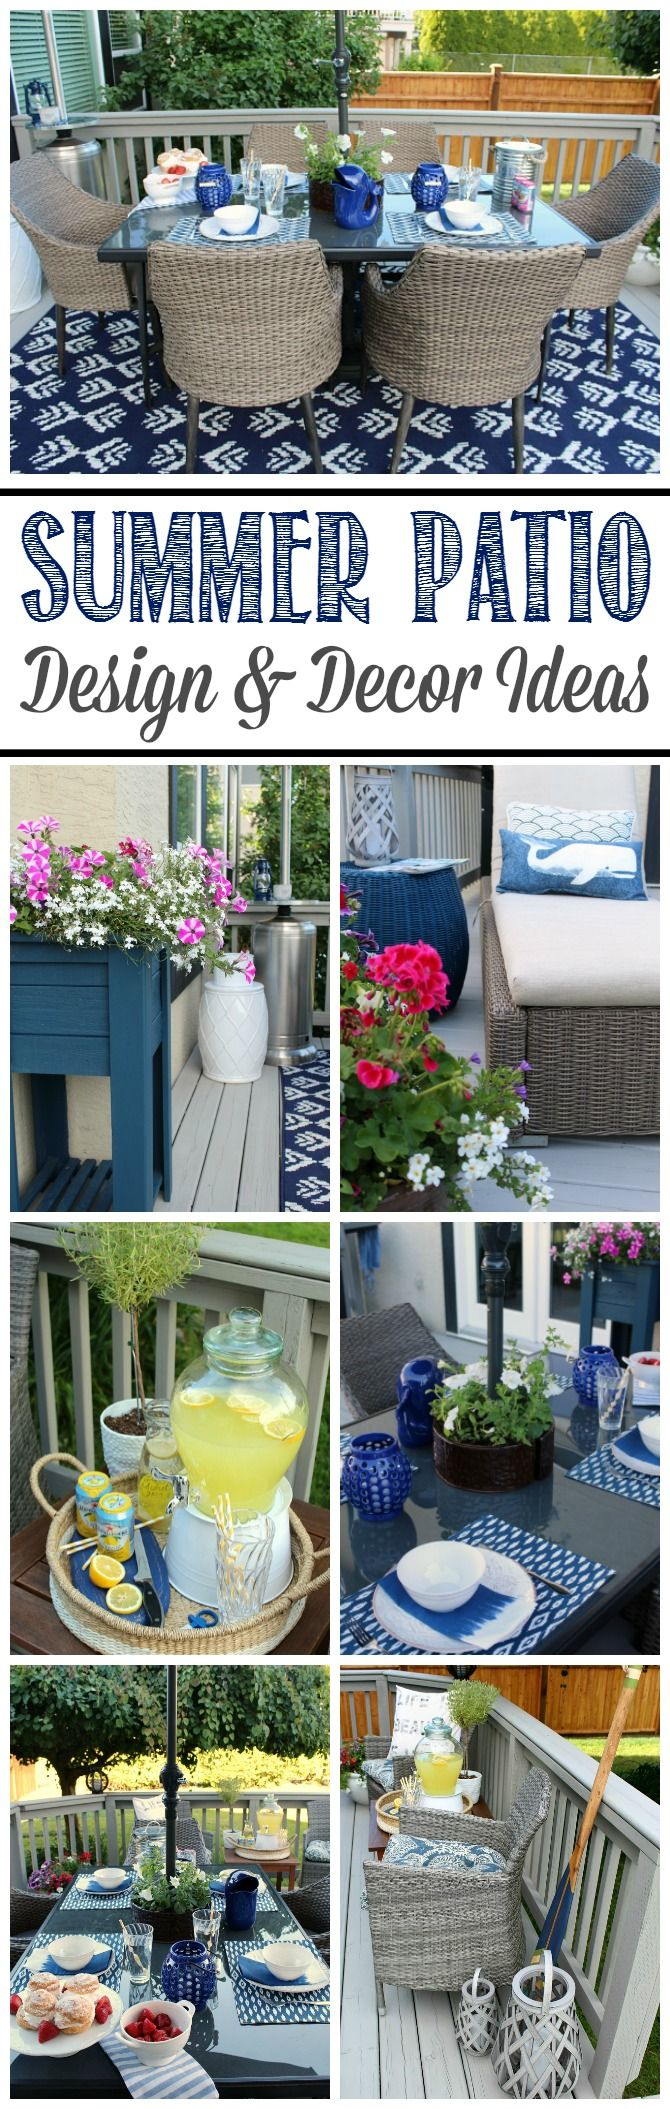 210 best home outdoor spaces images on pinterest garden ideas